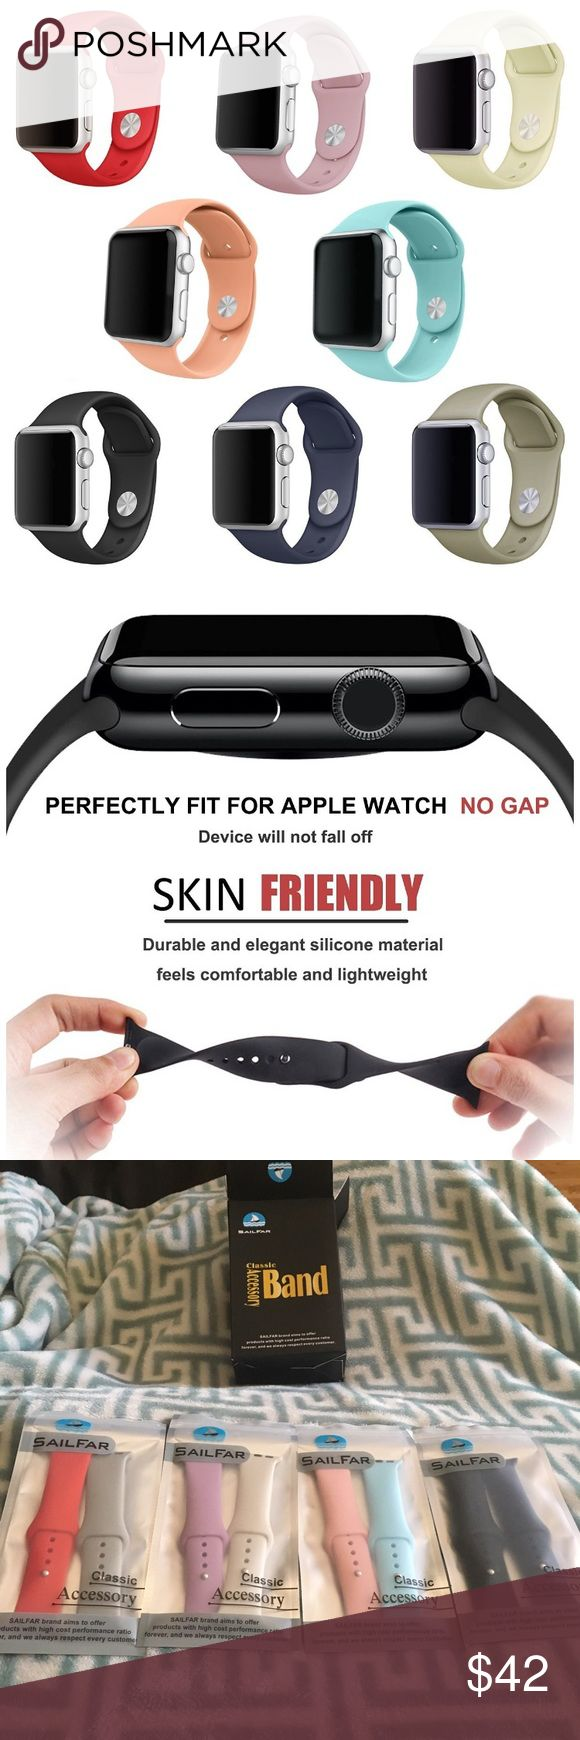 "NEW Apple Watch Bands Brand new, never used. 8 pack of silicone Apple Watch 38mm bands in a size small (5.5""-7.5""). The bands fit both the Apple Watch 1 and 2. Made from durable and elegant material makes you feel comfortable. Metal parts made with hypoallergenic nickel free stainless steel. The bands will not fade or become old even when they are worn in different types of weather because they are weather proof. Colors included are- black, navy, light pink, light blue, lavender, white, red…"